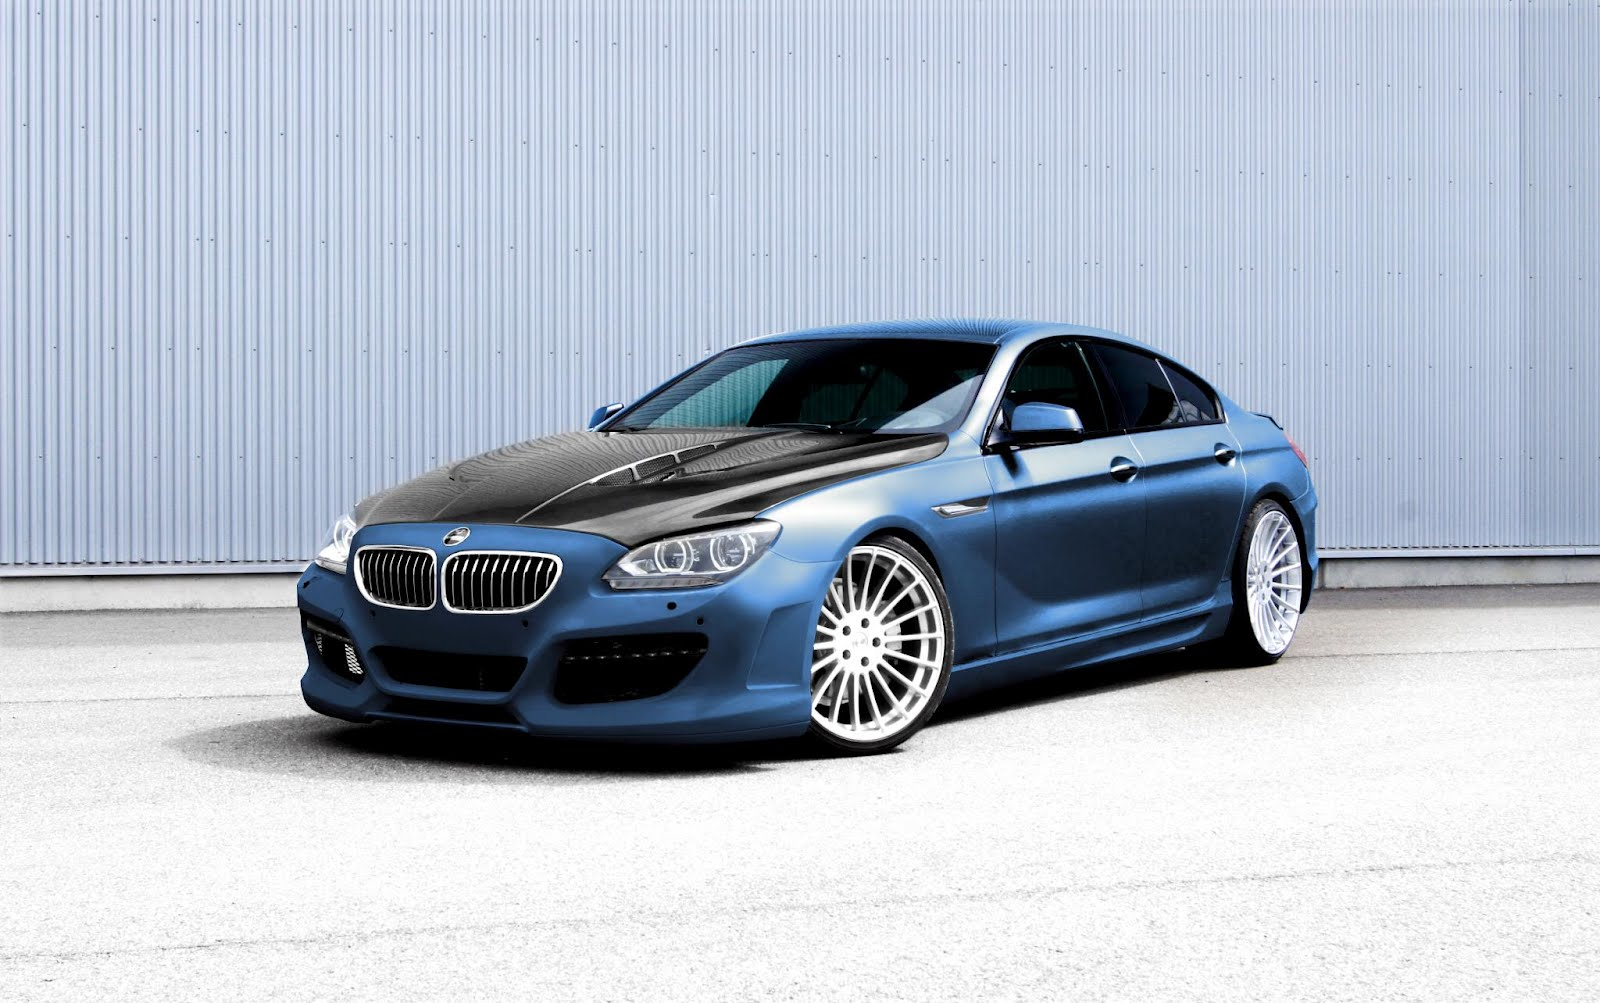 Hamann previews tuning program for BMW 6 Series Gran Coupe